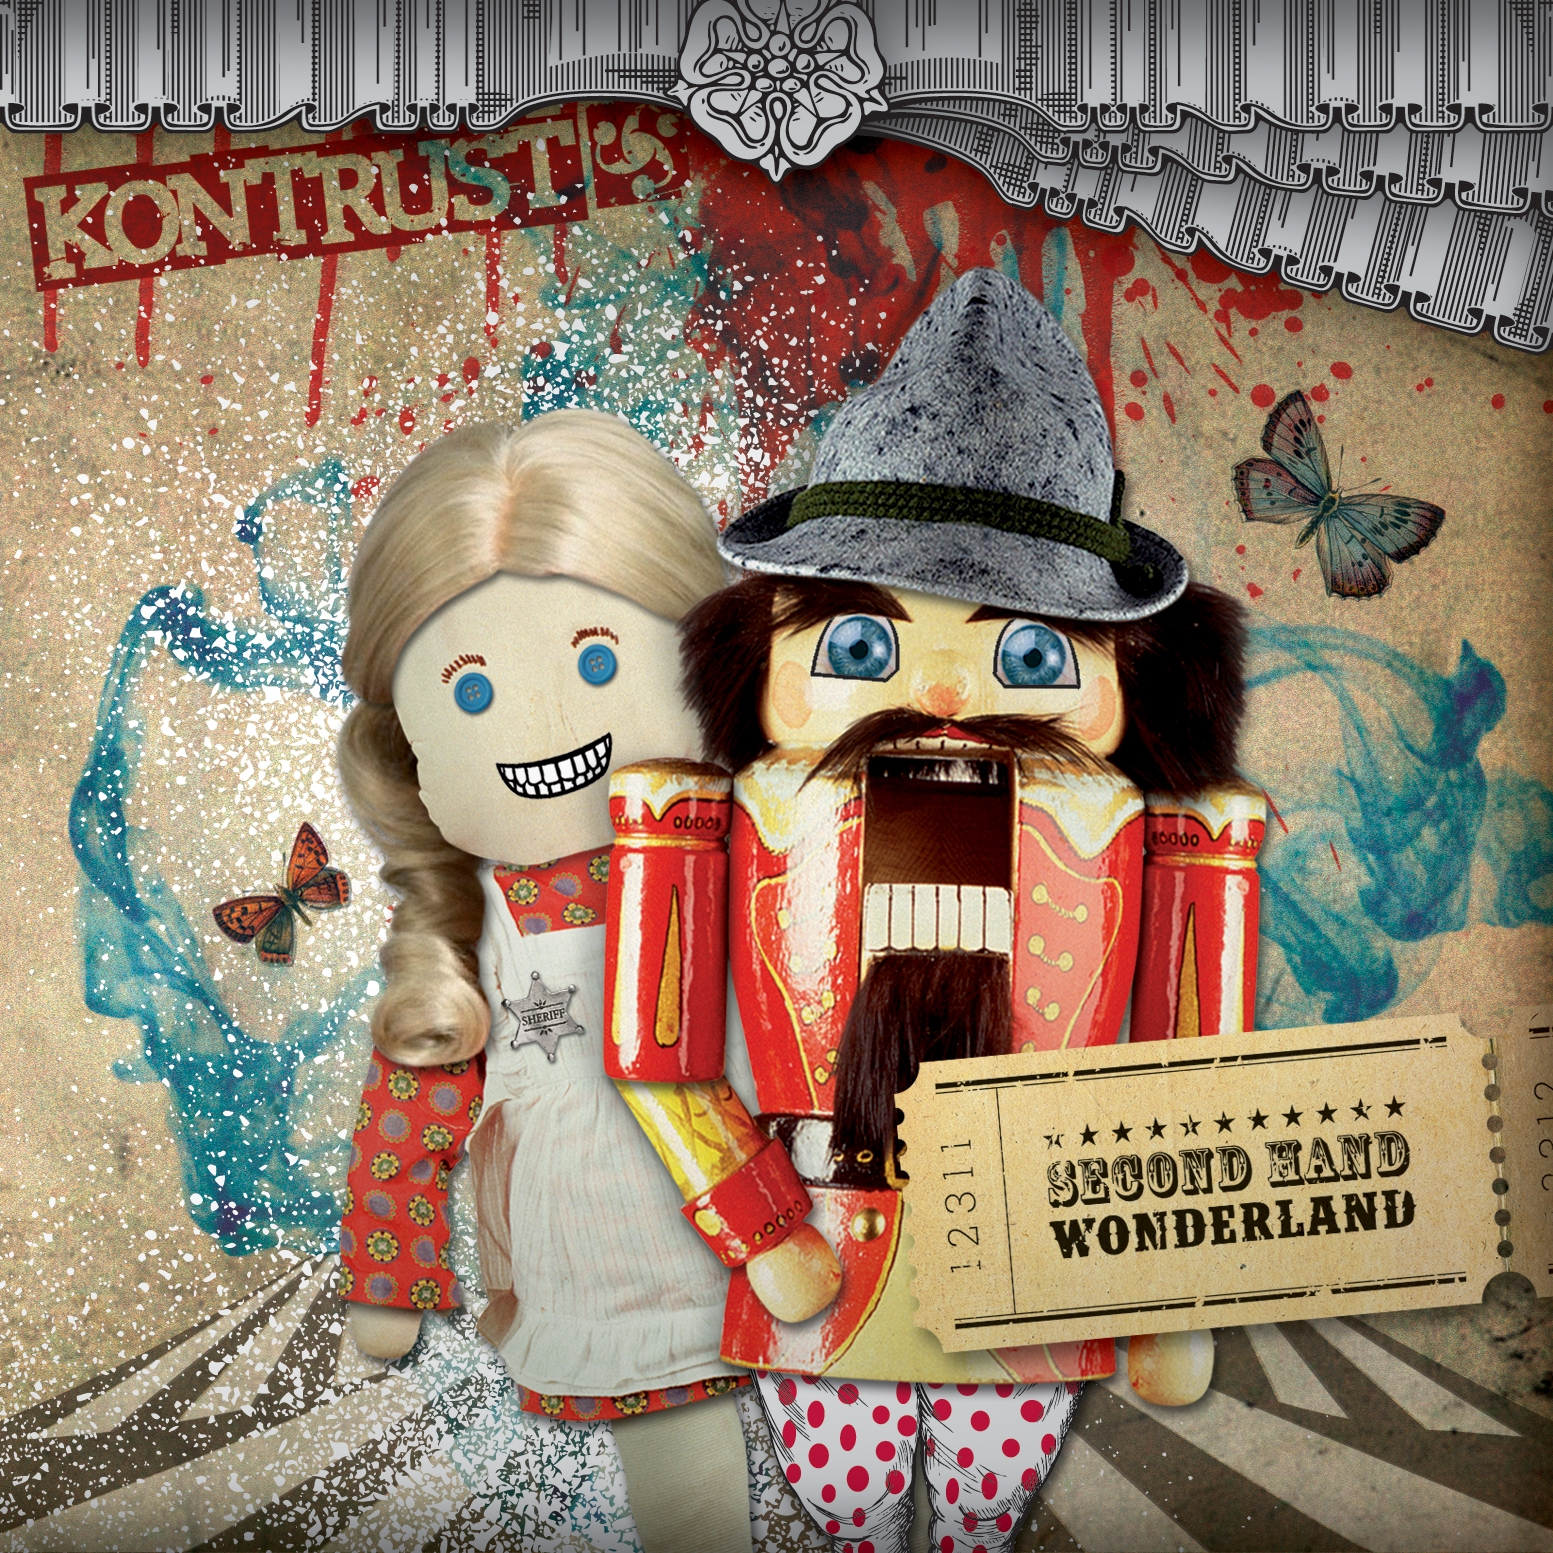 Kontrust – Second Hand Wonderland Review